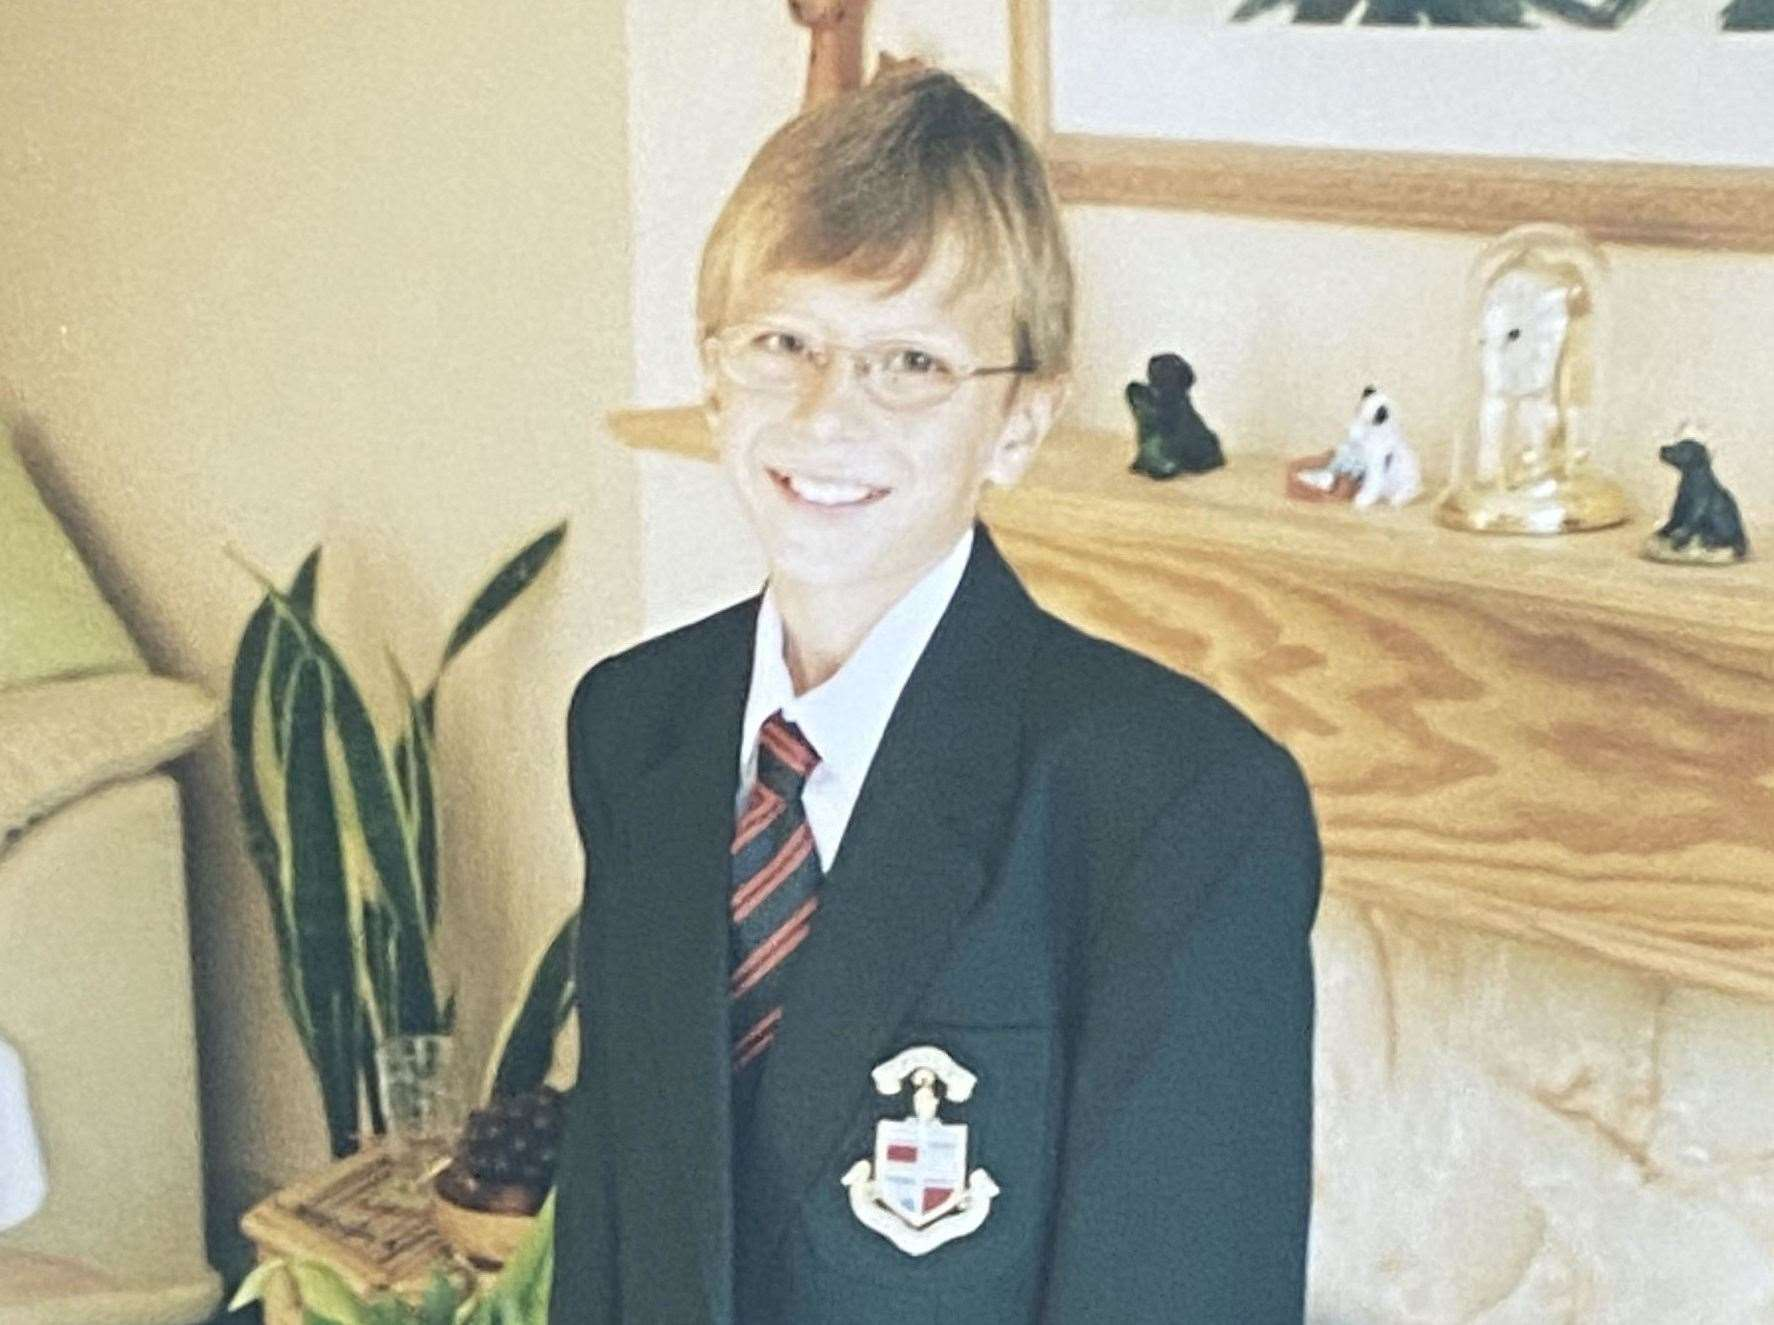 James on his first day at the Harvey Grammar